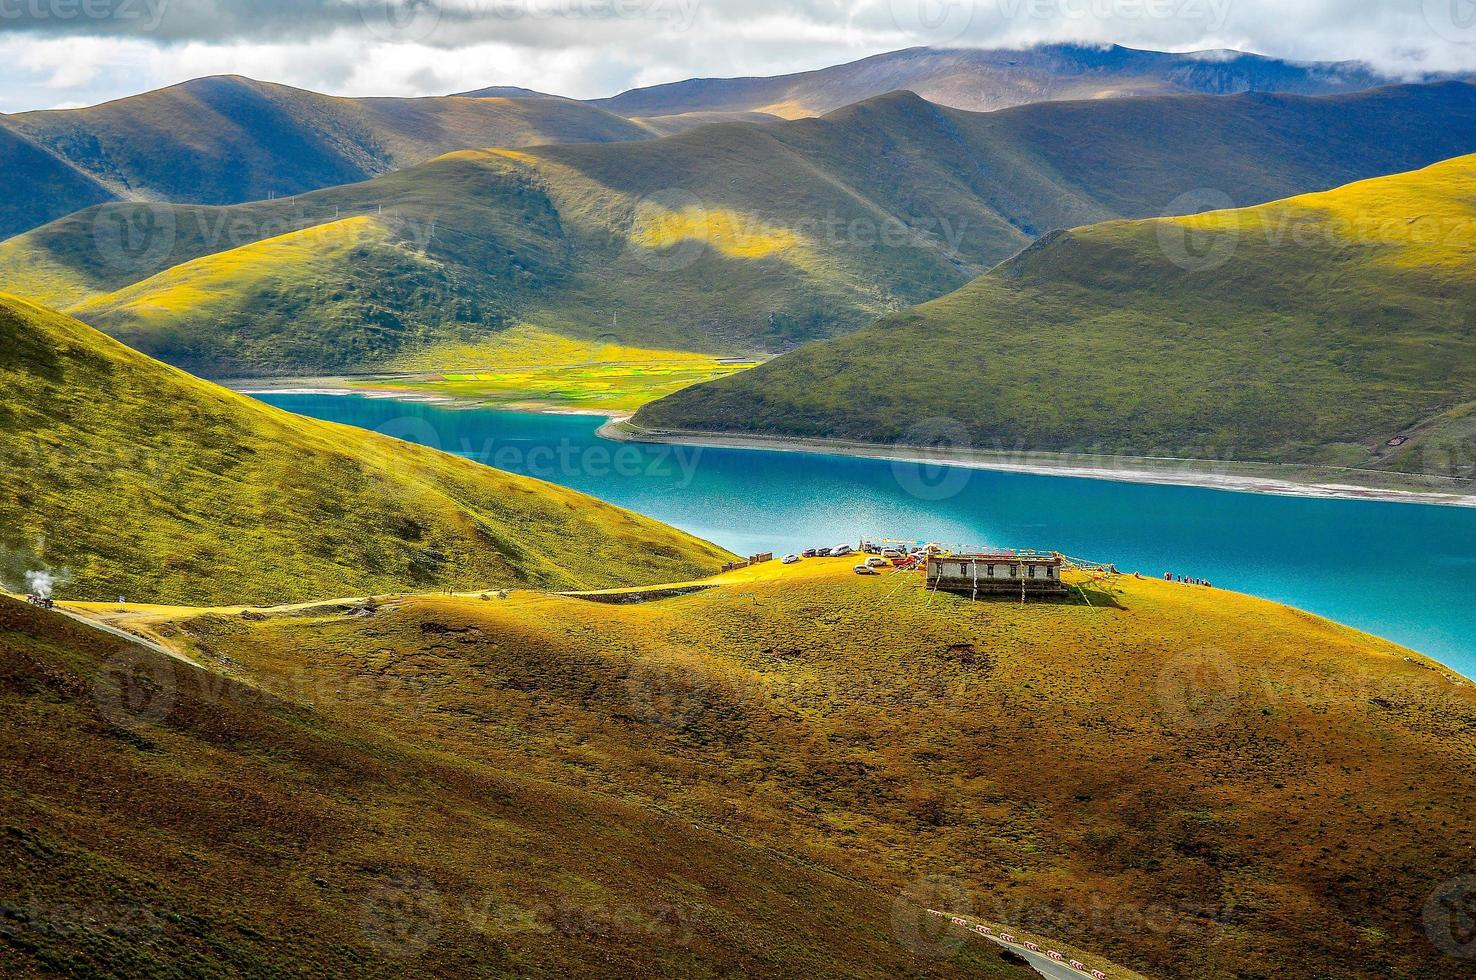 Autumn in Tibet photo